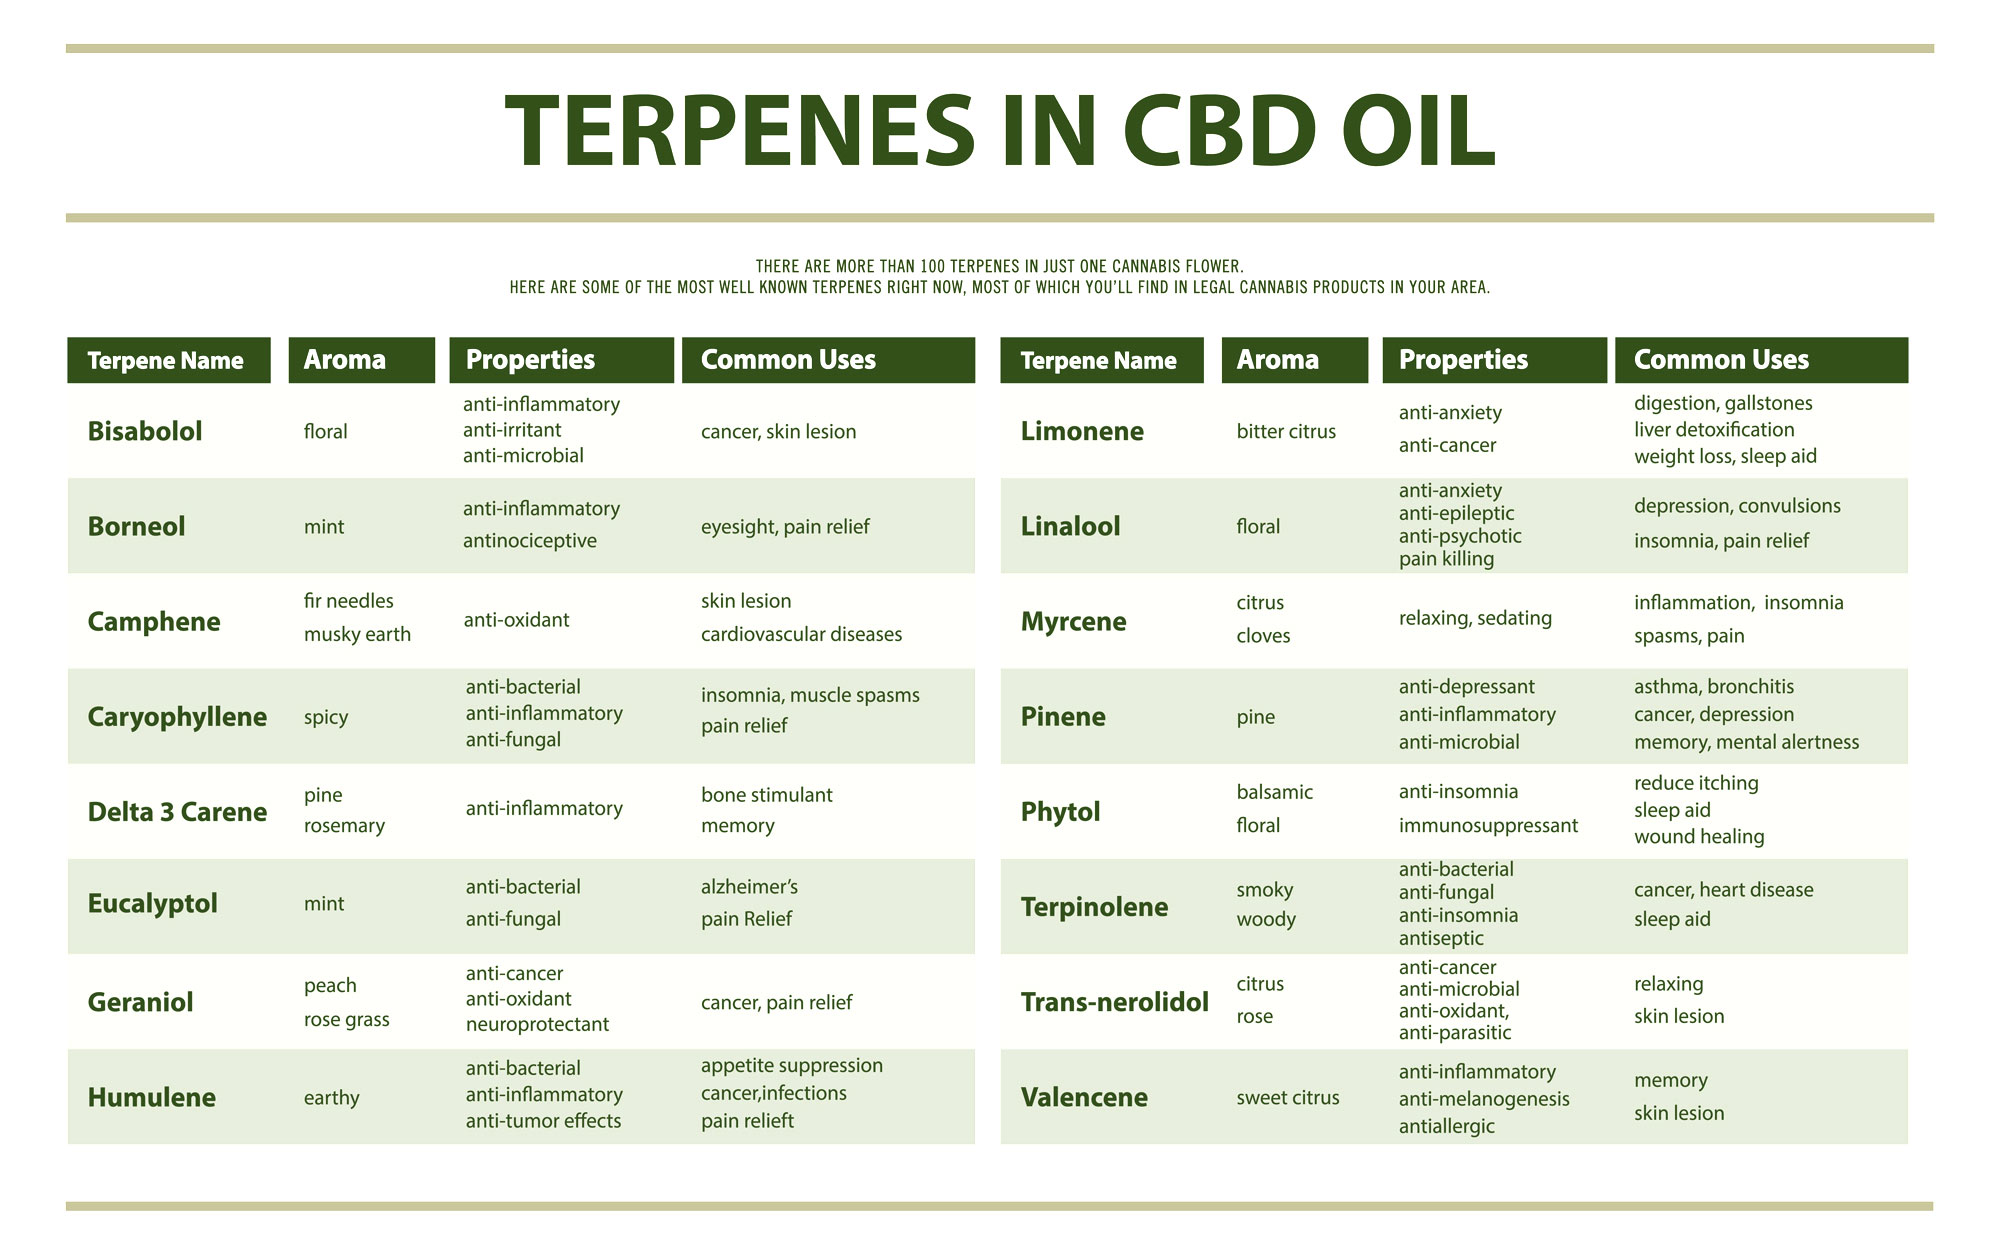 slide chart illustrating the terpenes found in CBD oil